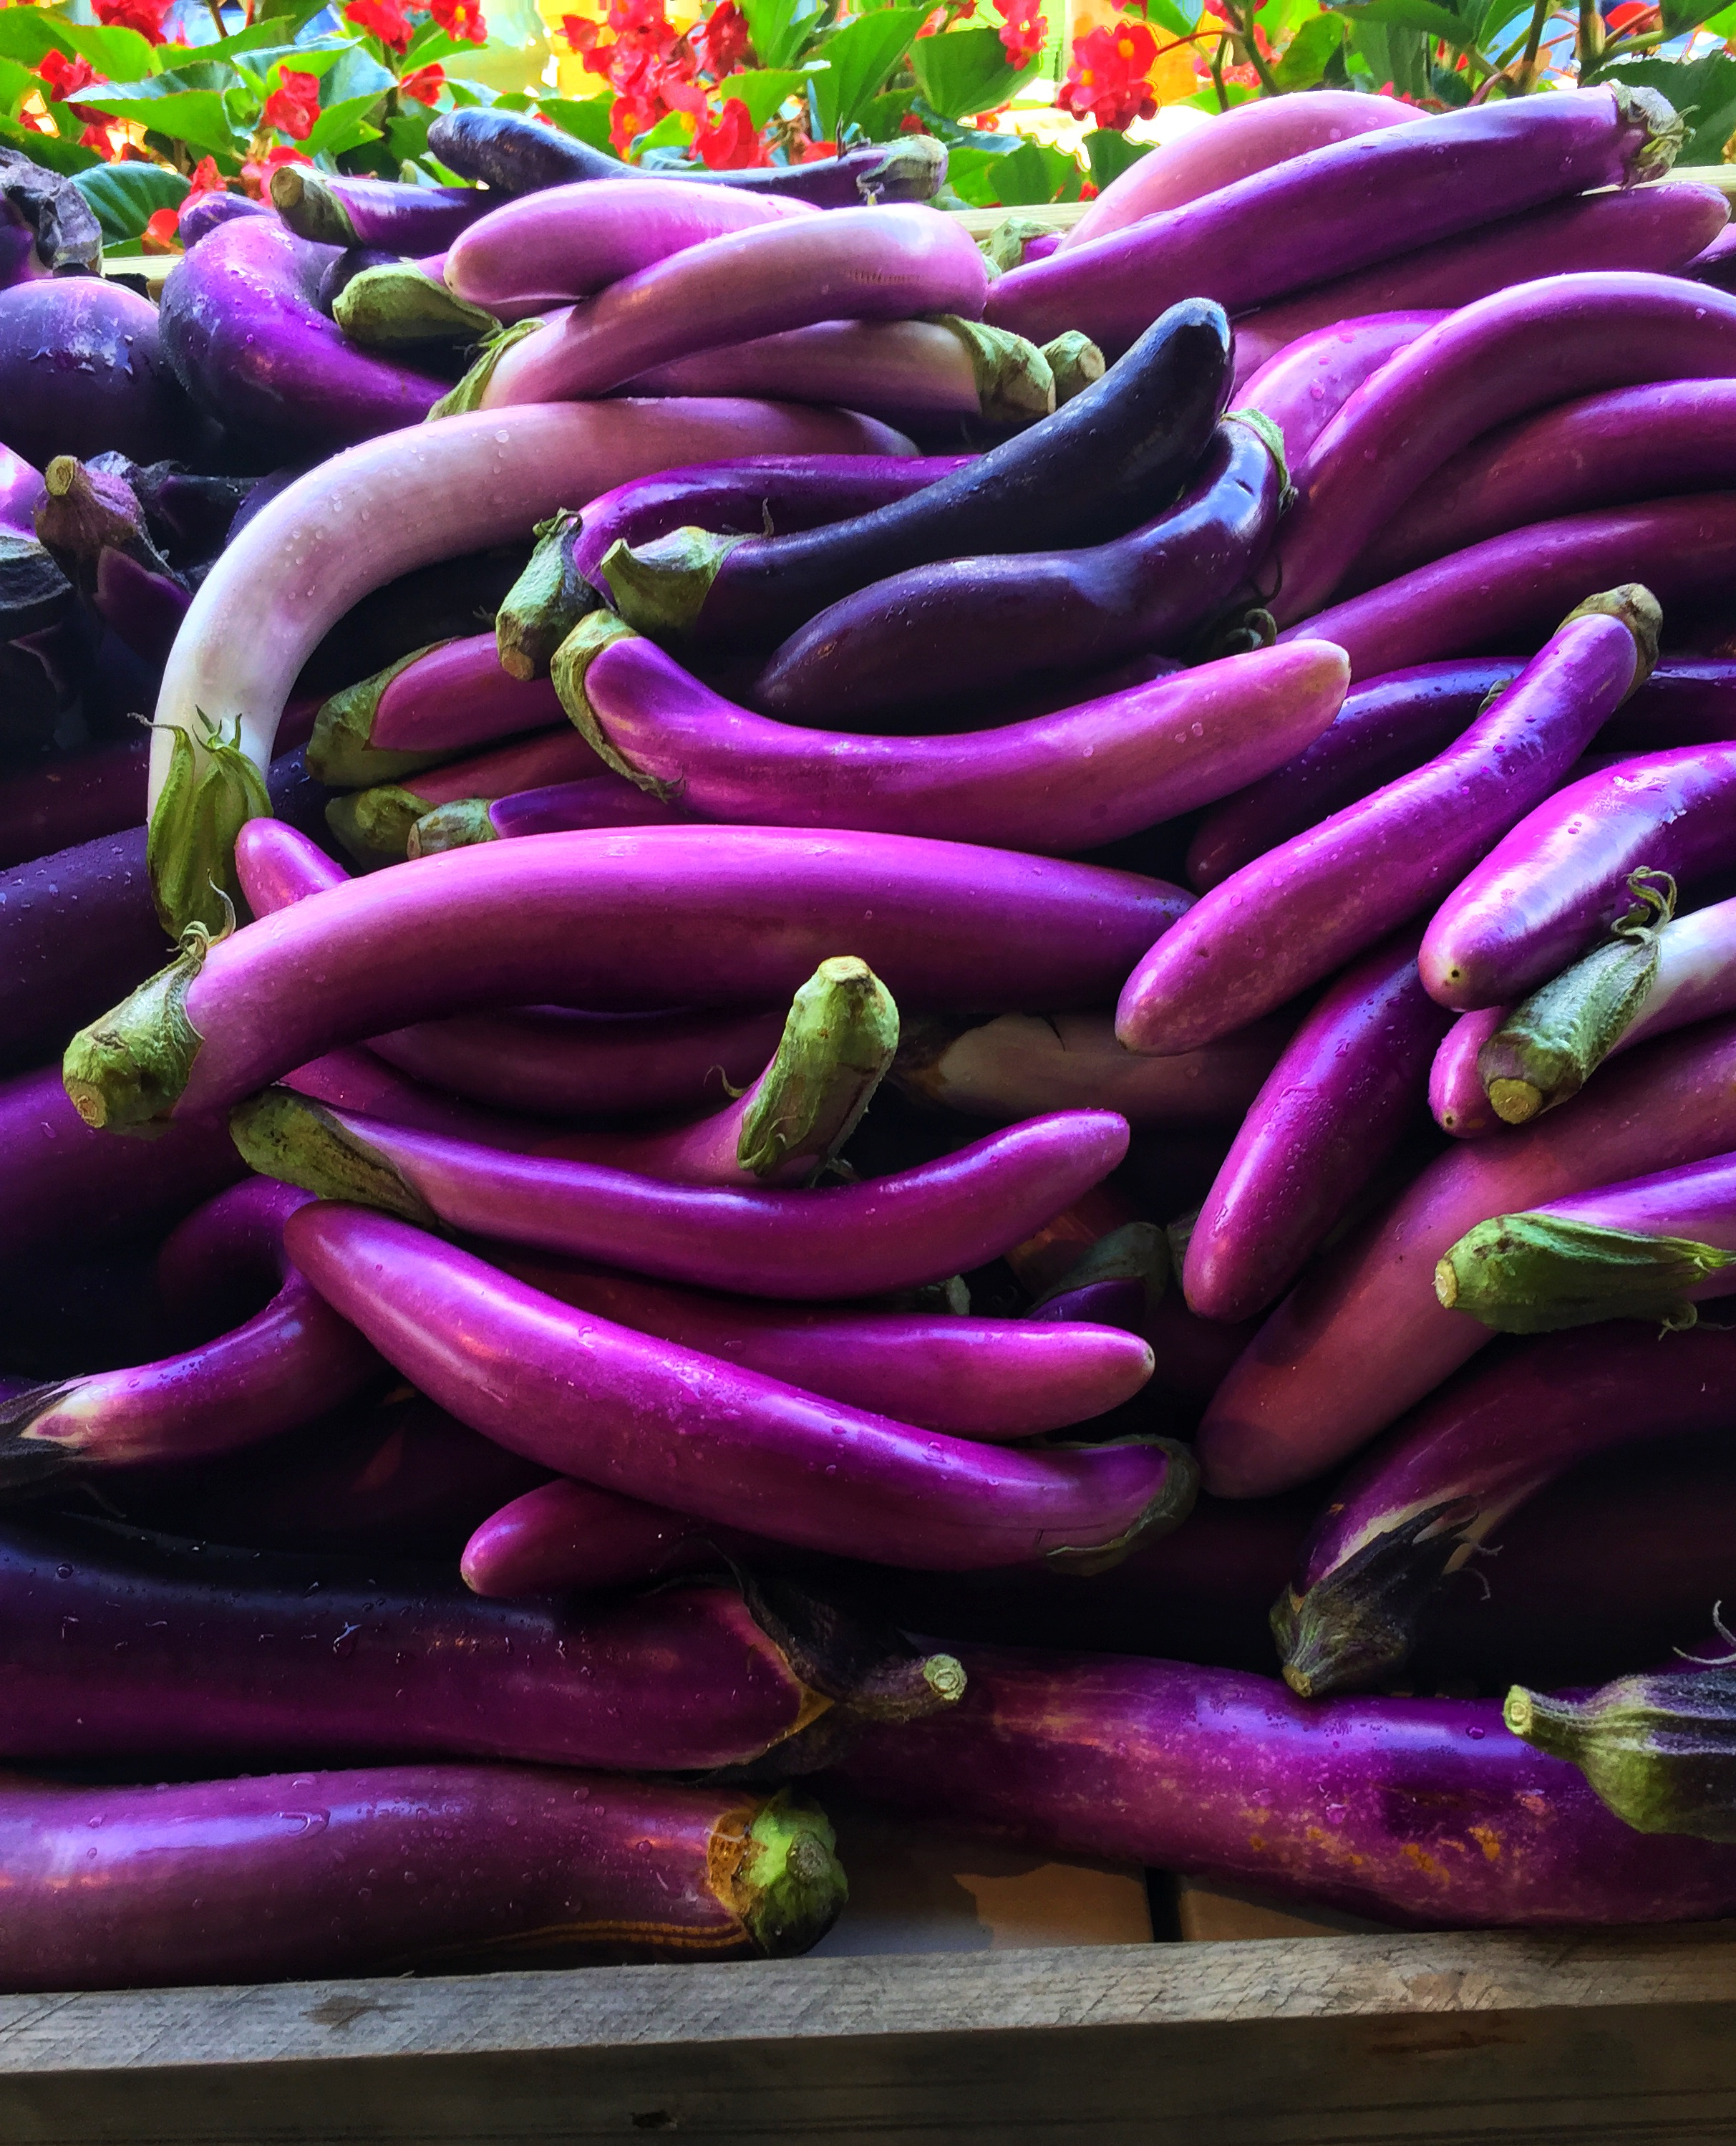 Locally grown eggplant at Russo's